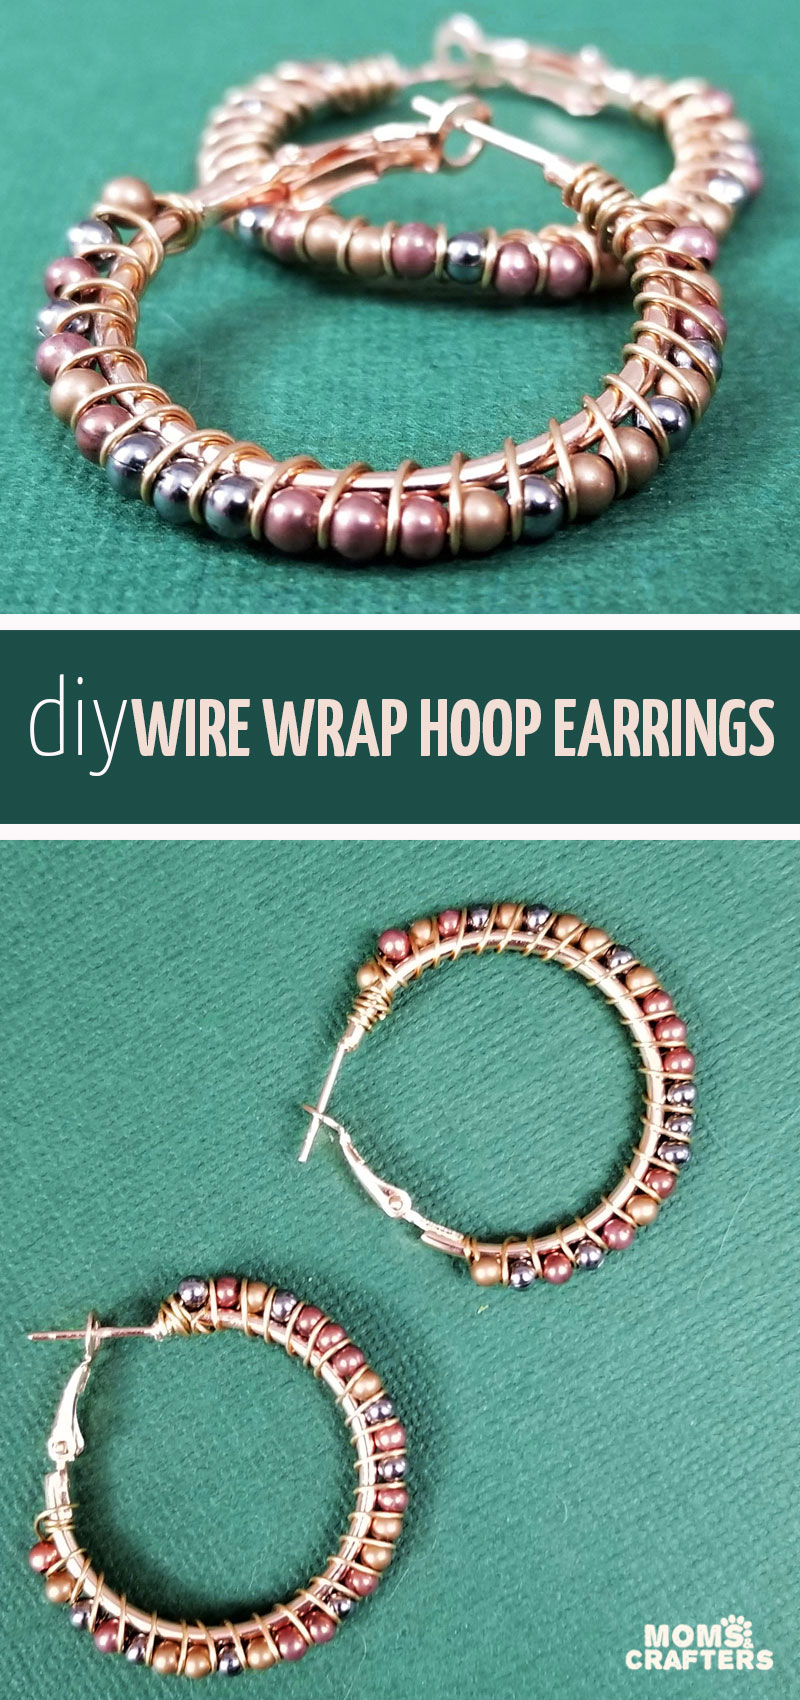 Click to learn how to mkae DIY wire wrapped hoops! This tutorial will teach you how to wire wrap hoop earrings in an easy jewelry making project for teens and beyond.